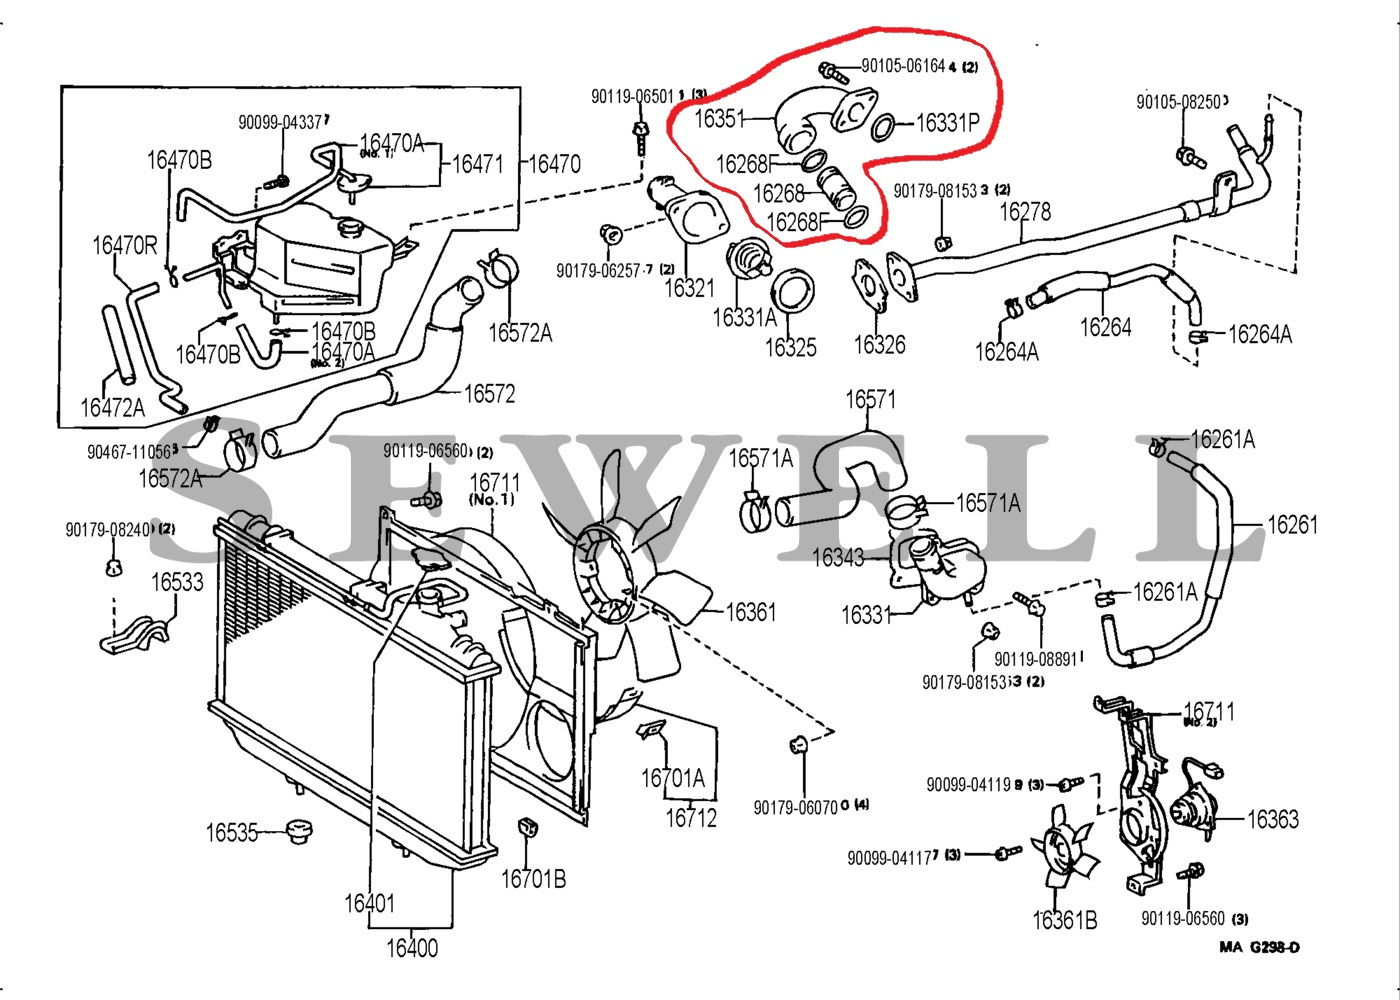 02 thermostat housing location